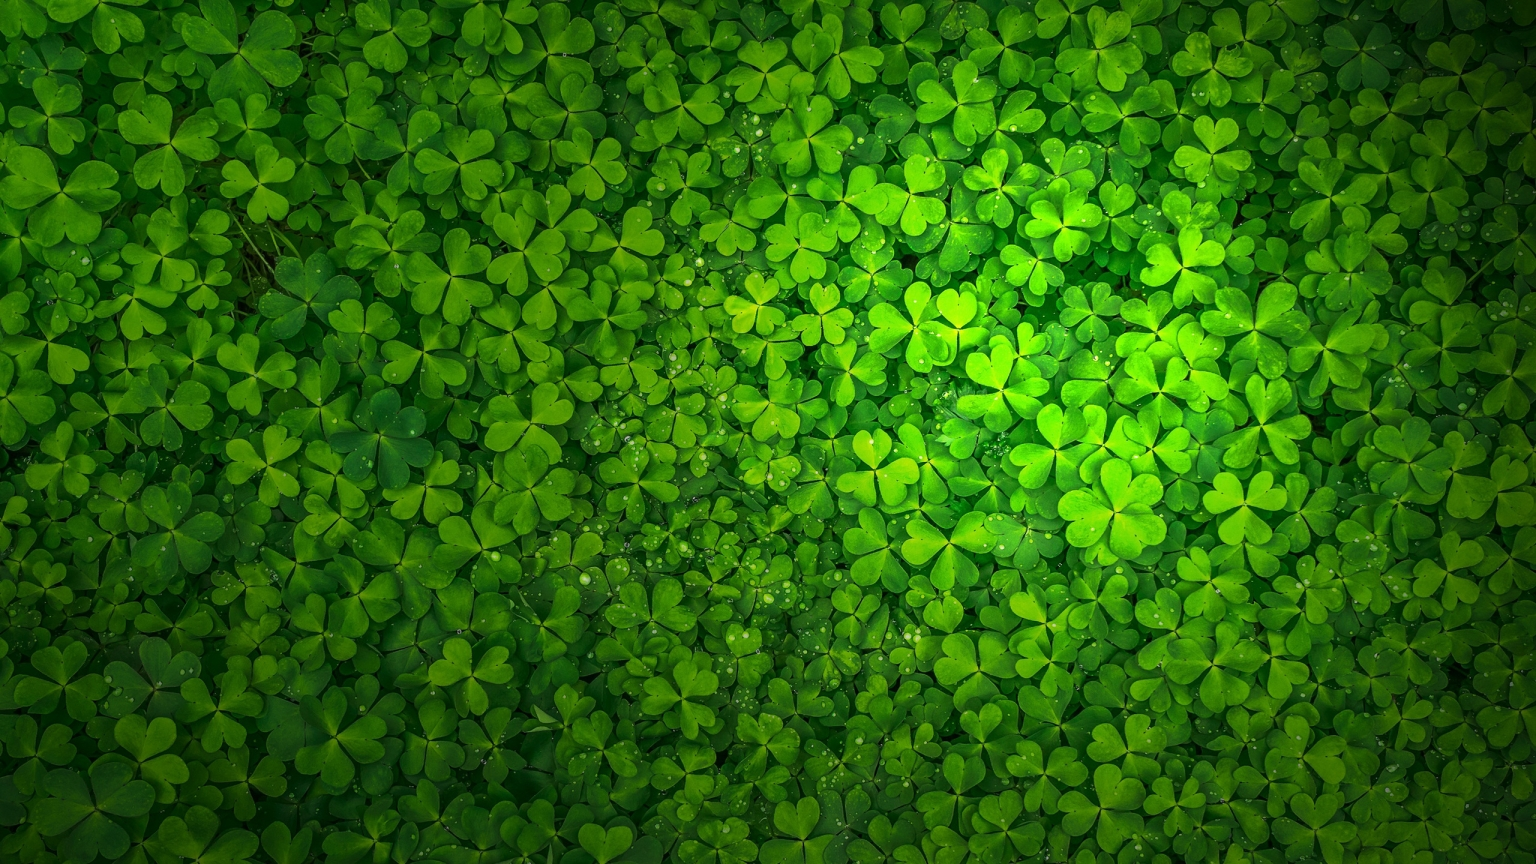 St Patrick's Day for 1536 x 864 HDTV resolution